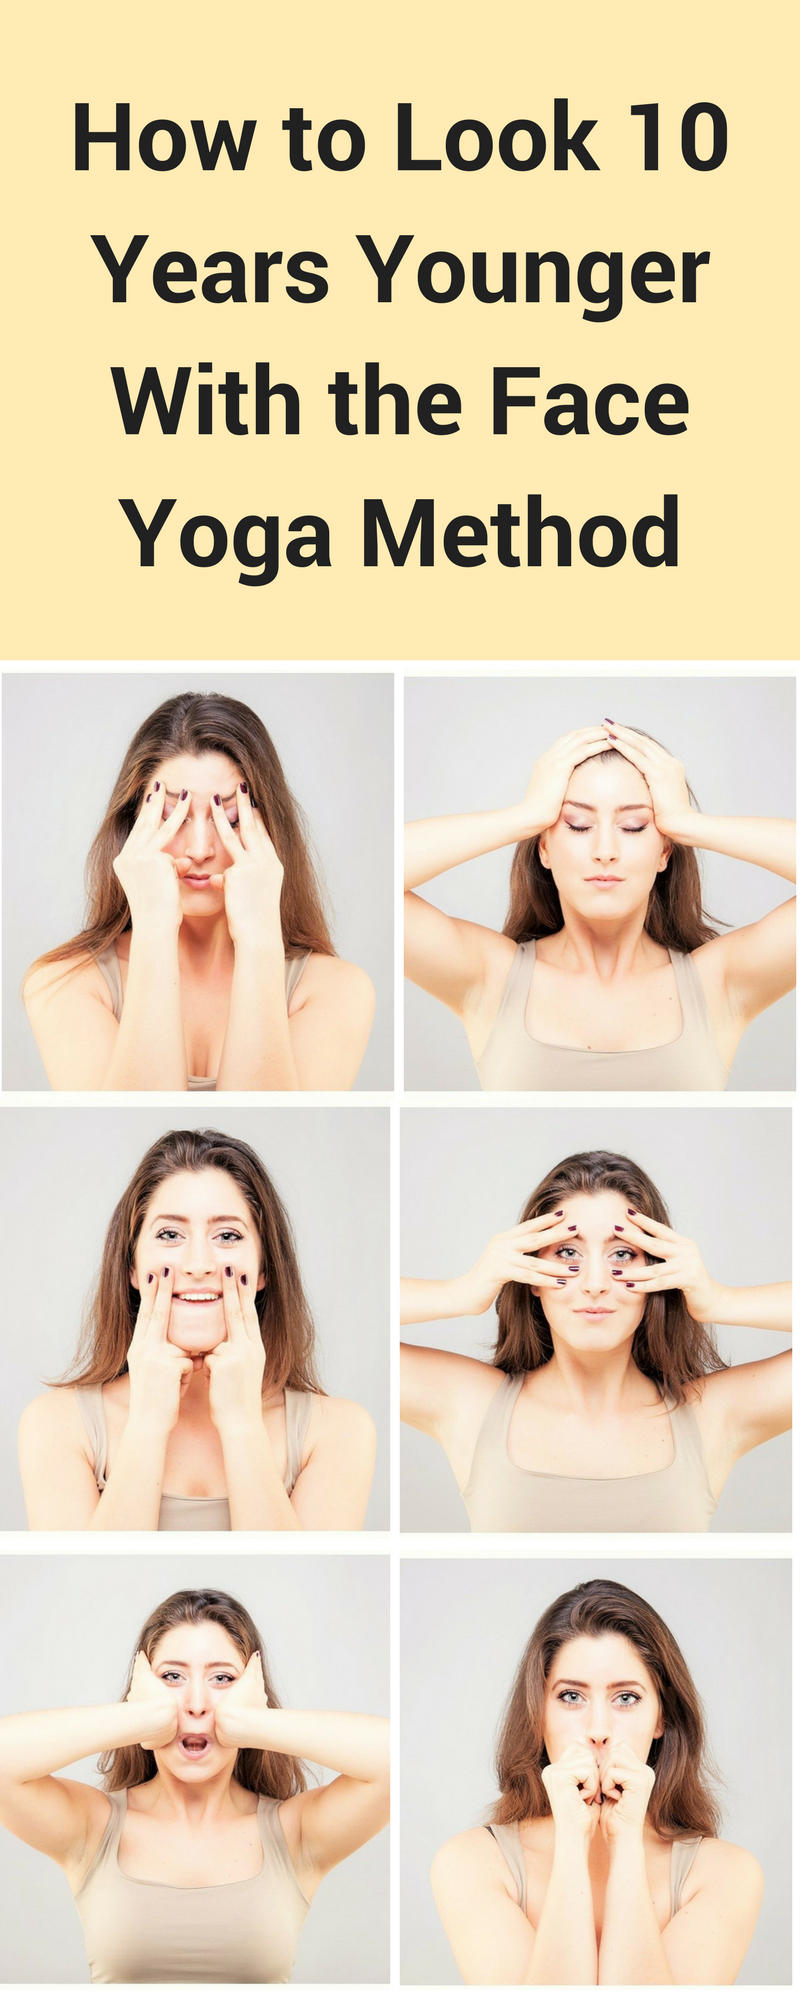 Face Yoga Makes You Look Younger By Toning The Face Try The Pefect Face Yoga Program To Make You Look And Feel Younger Face Yoga Facial Yoga Face Yoga Method